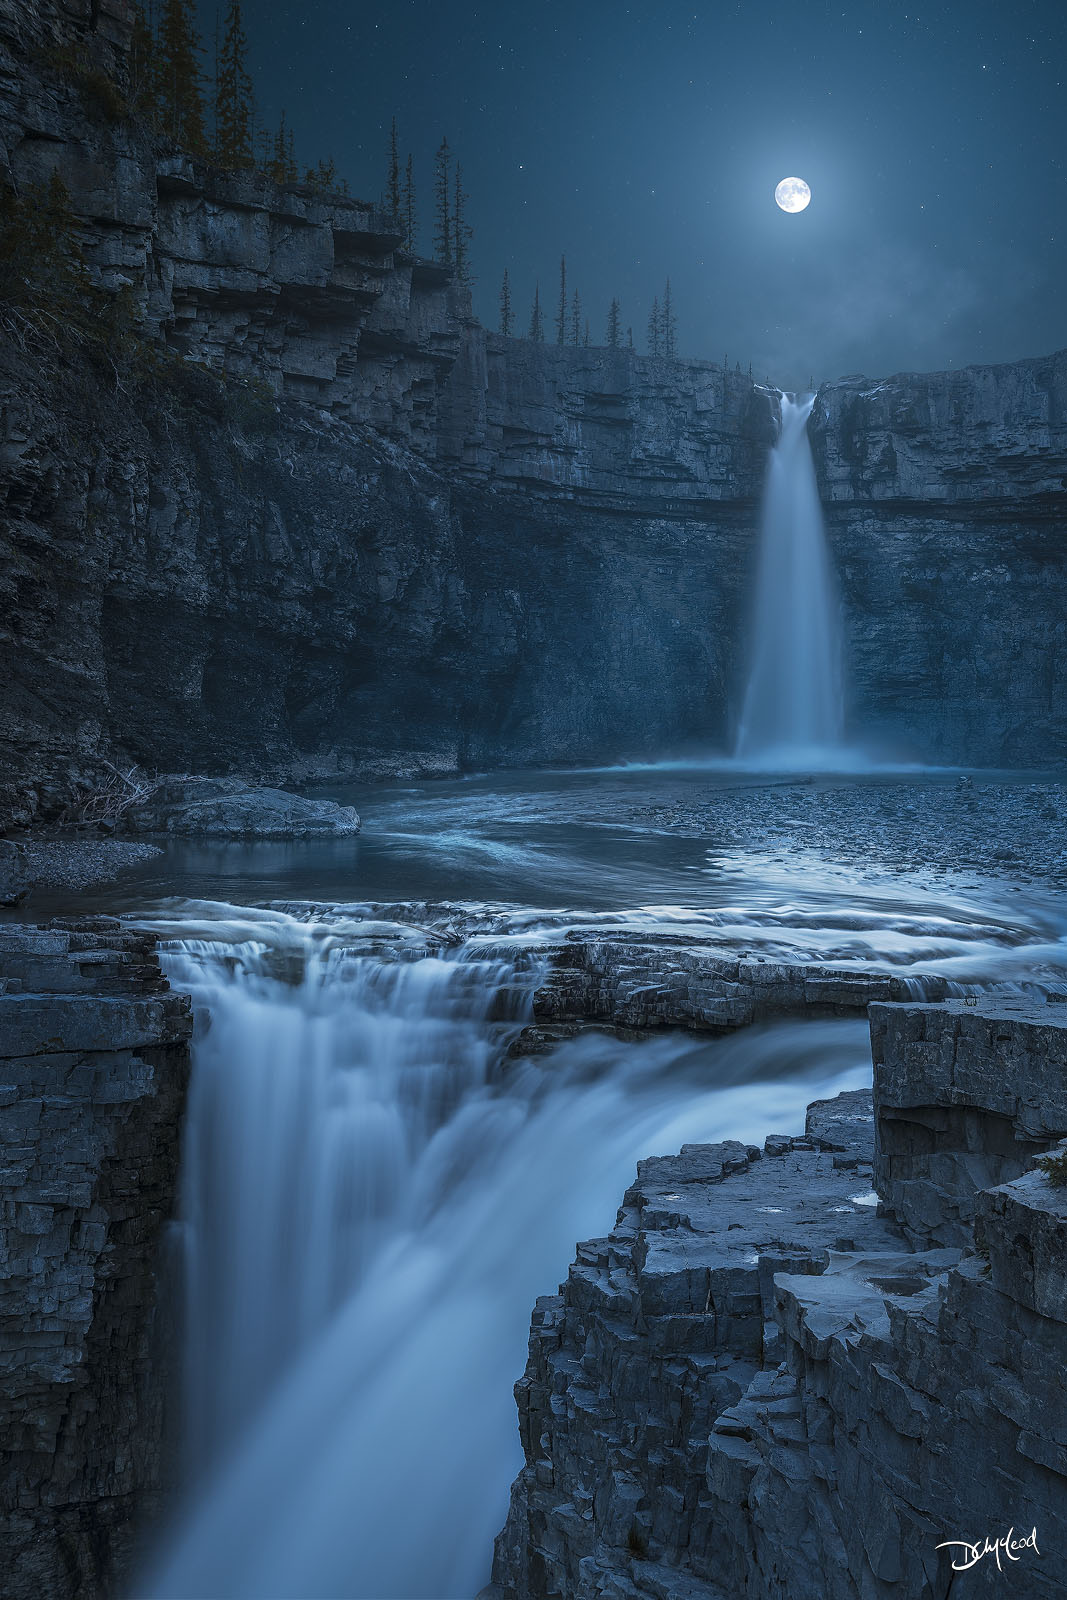 crescent falls, bighorn river, alberta, canada, rockies, water, cascades, atmosphere, moon, photo